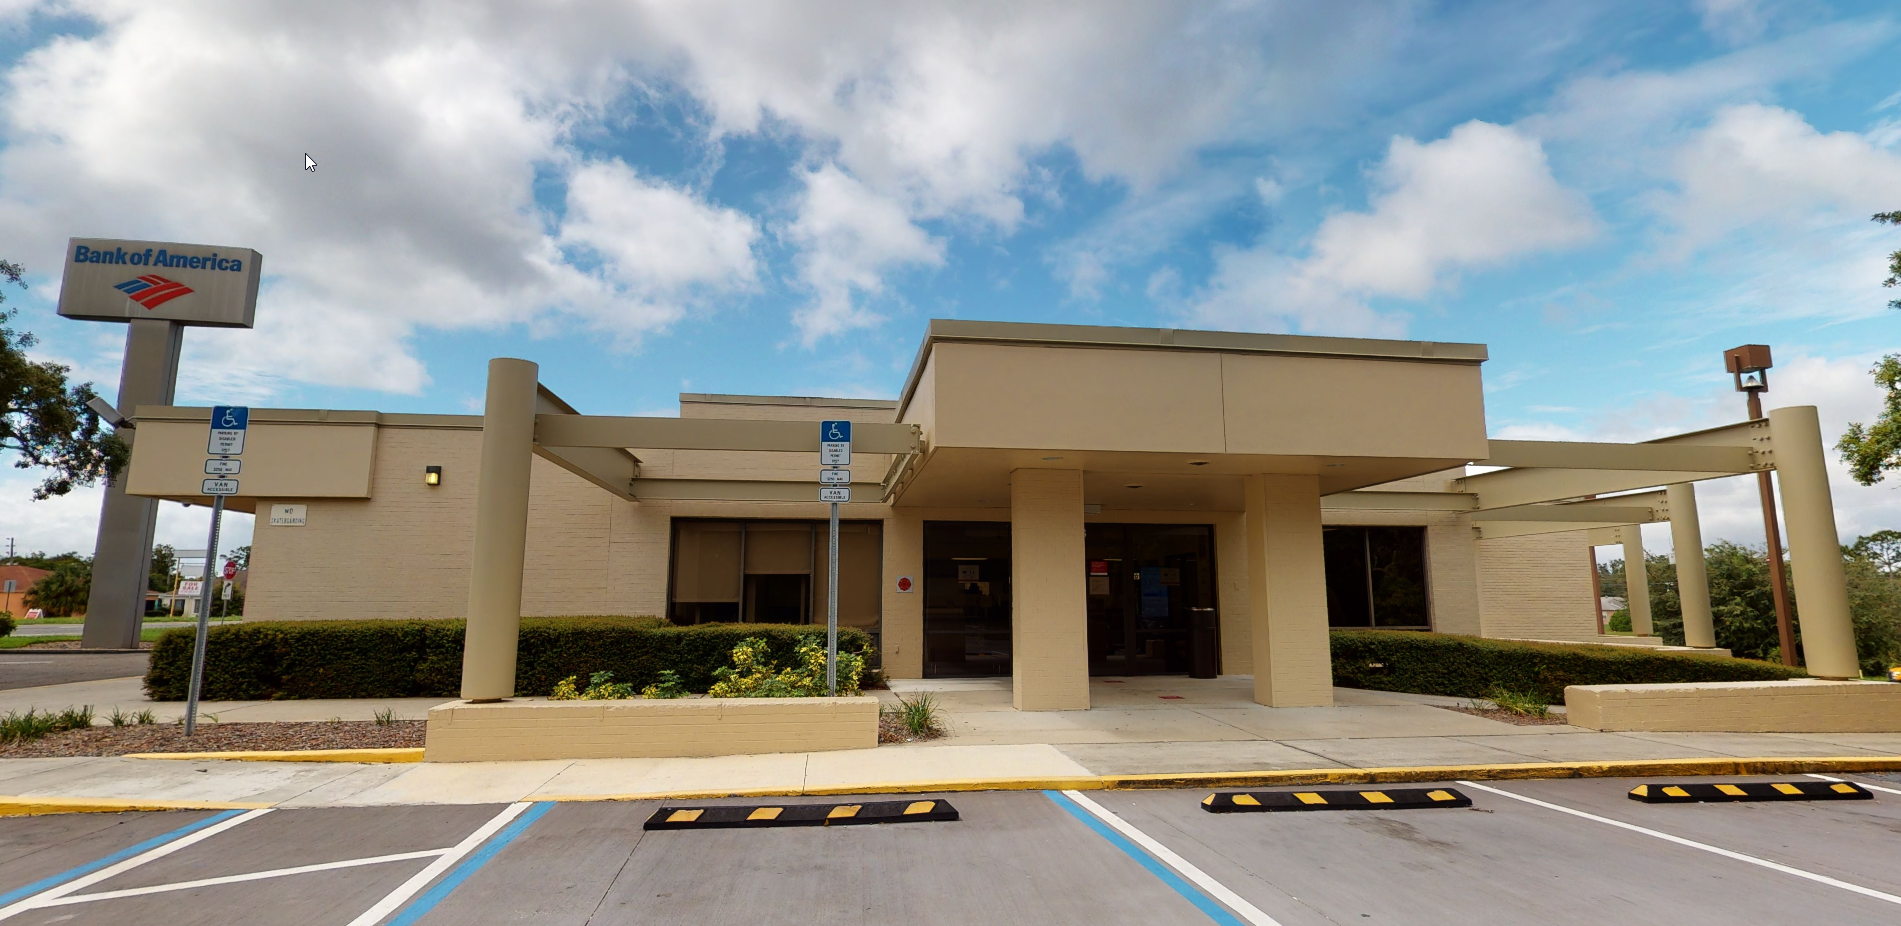 Bank of America financial center with walk-up ATM | 6023 Spring Hill Dr, Spring Hill, FL 34606